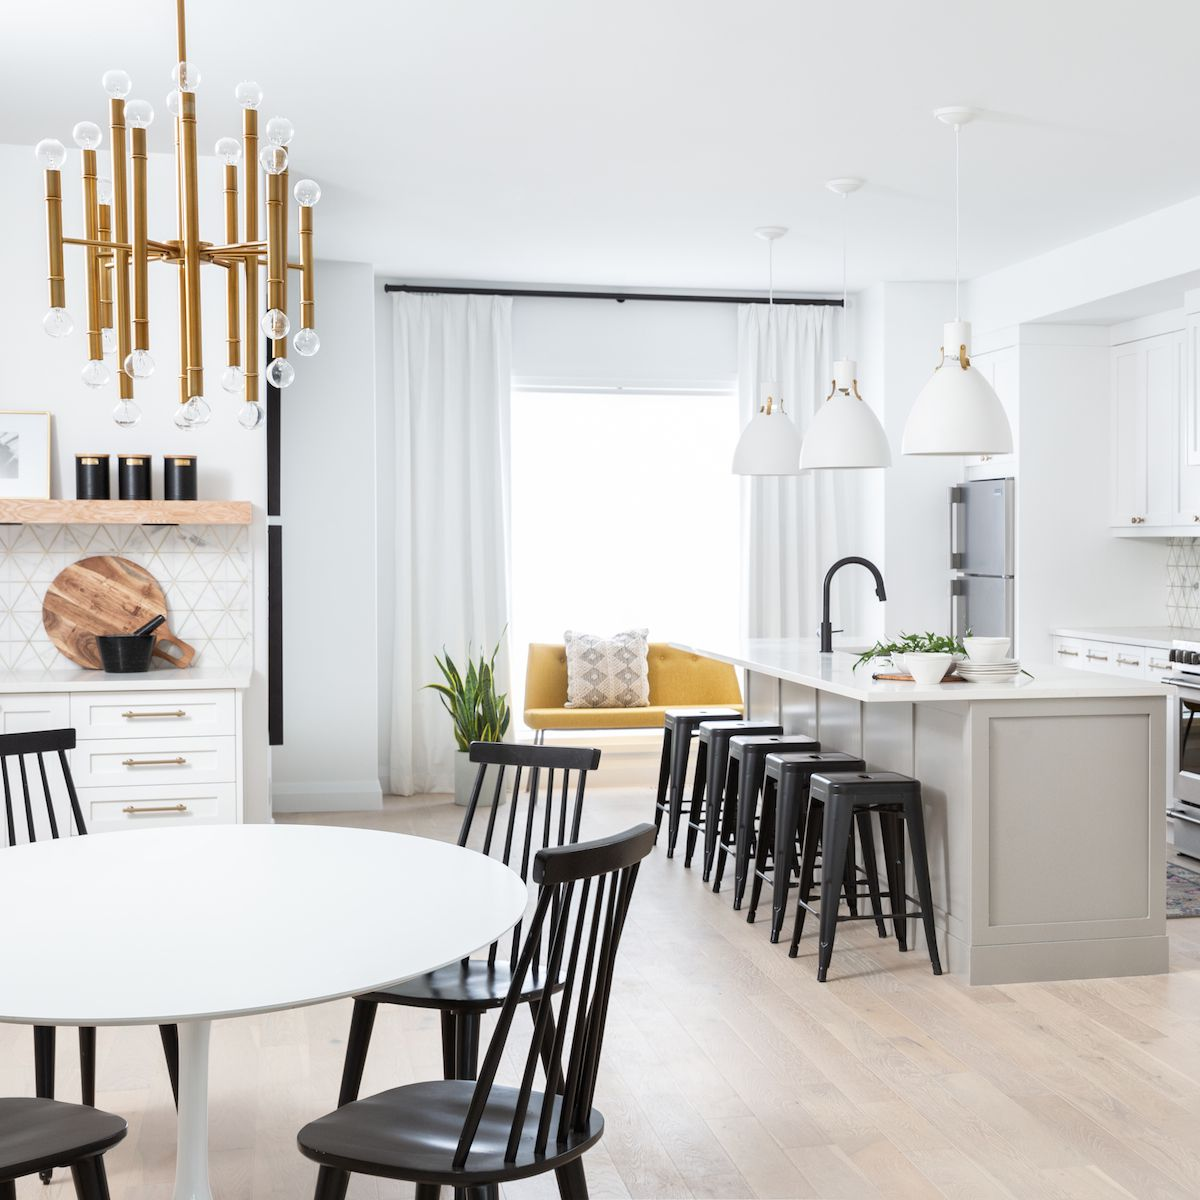 A kitchen with a gray kitchen island and striking black chairs